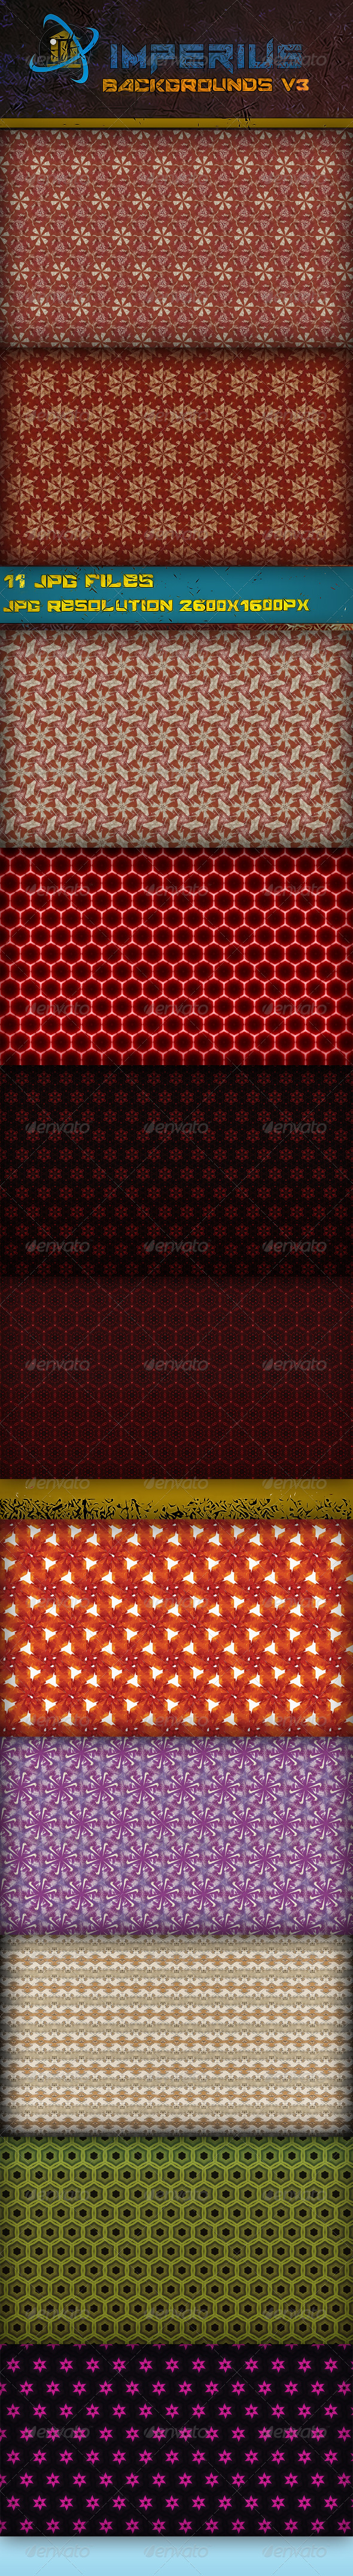 GraphicRiver Backgrounds V3 3383994